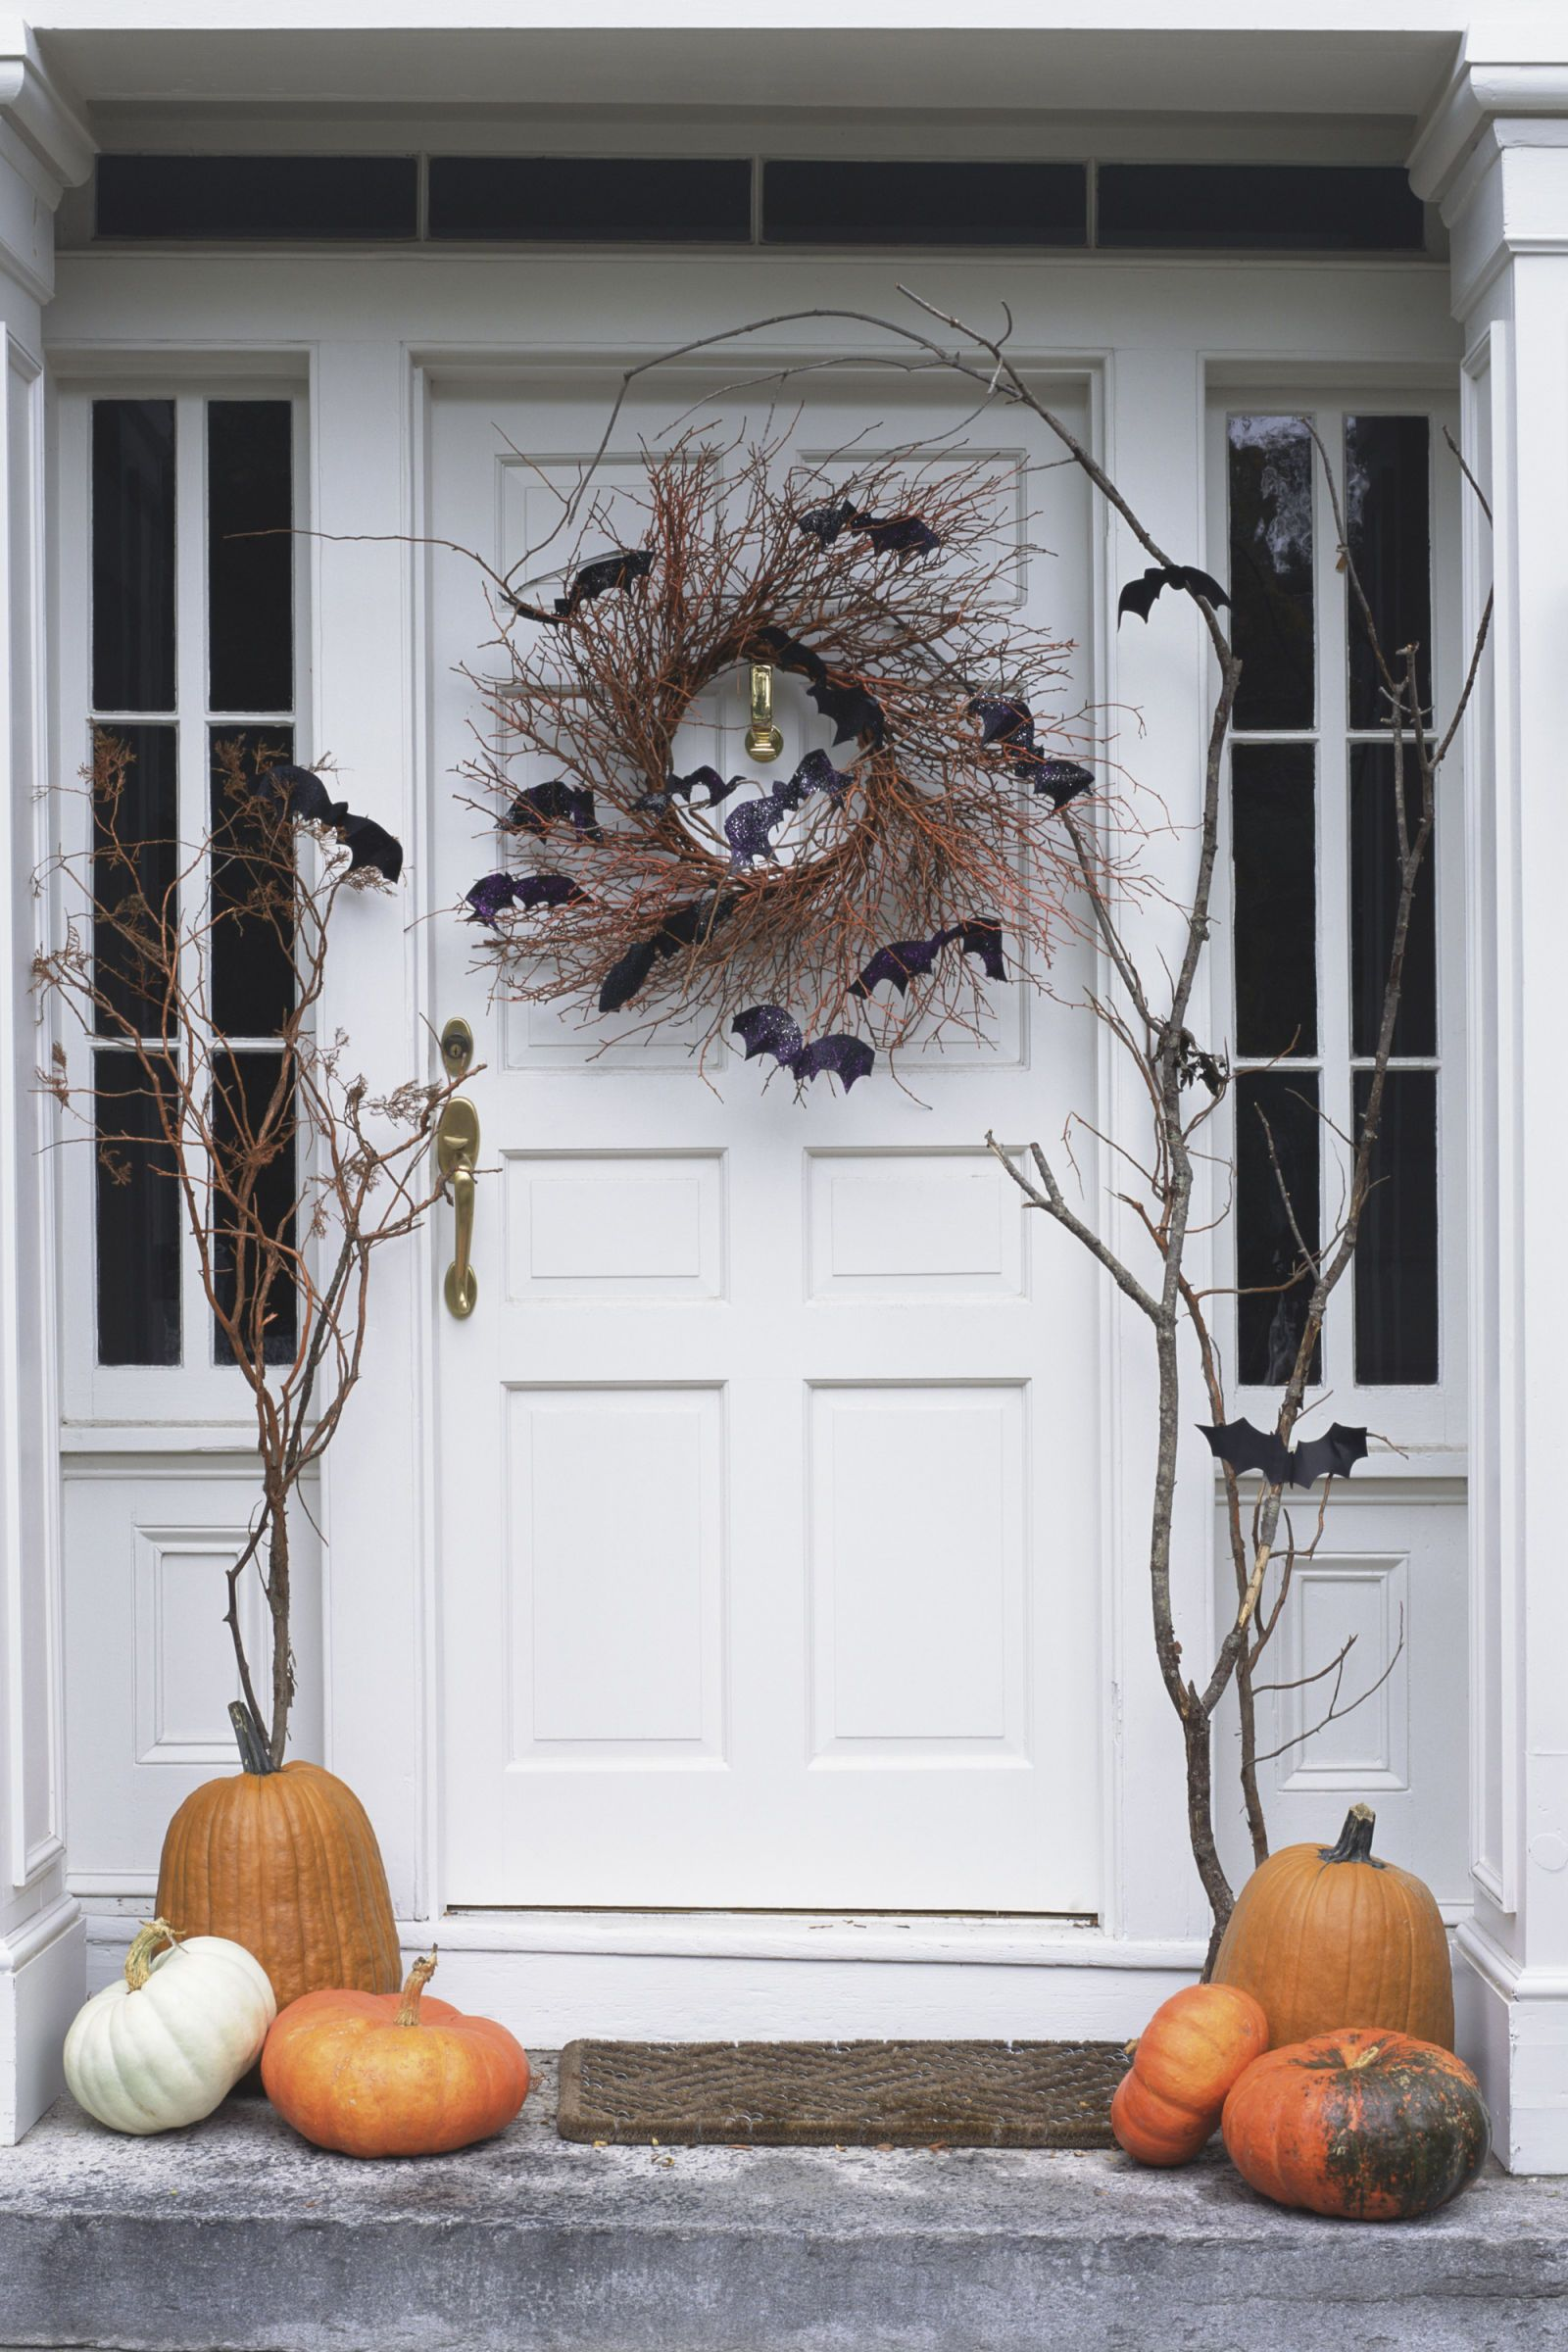 19 Spooky Halloween Decoration Ideas That Are So Chic It s